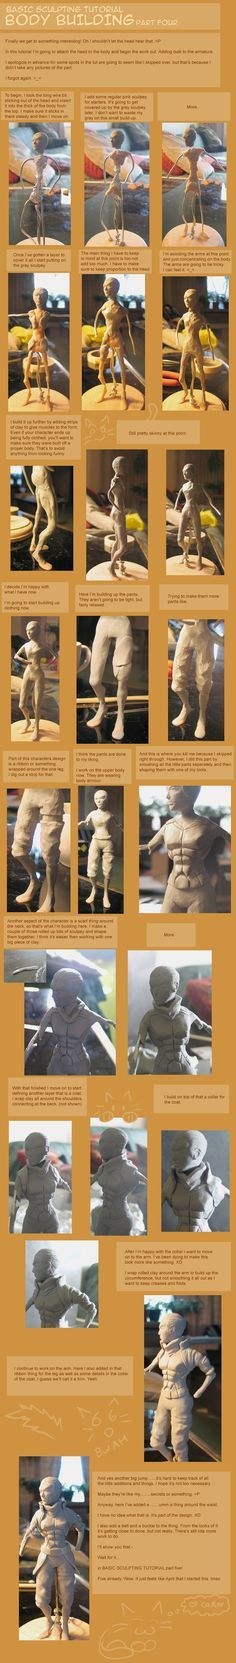 Tutorial 4 - Body Building by =LadyDore on deviantART